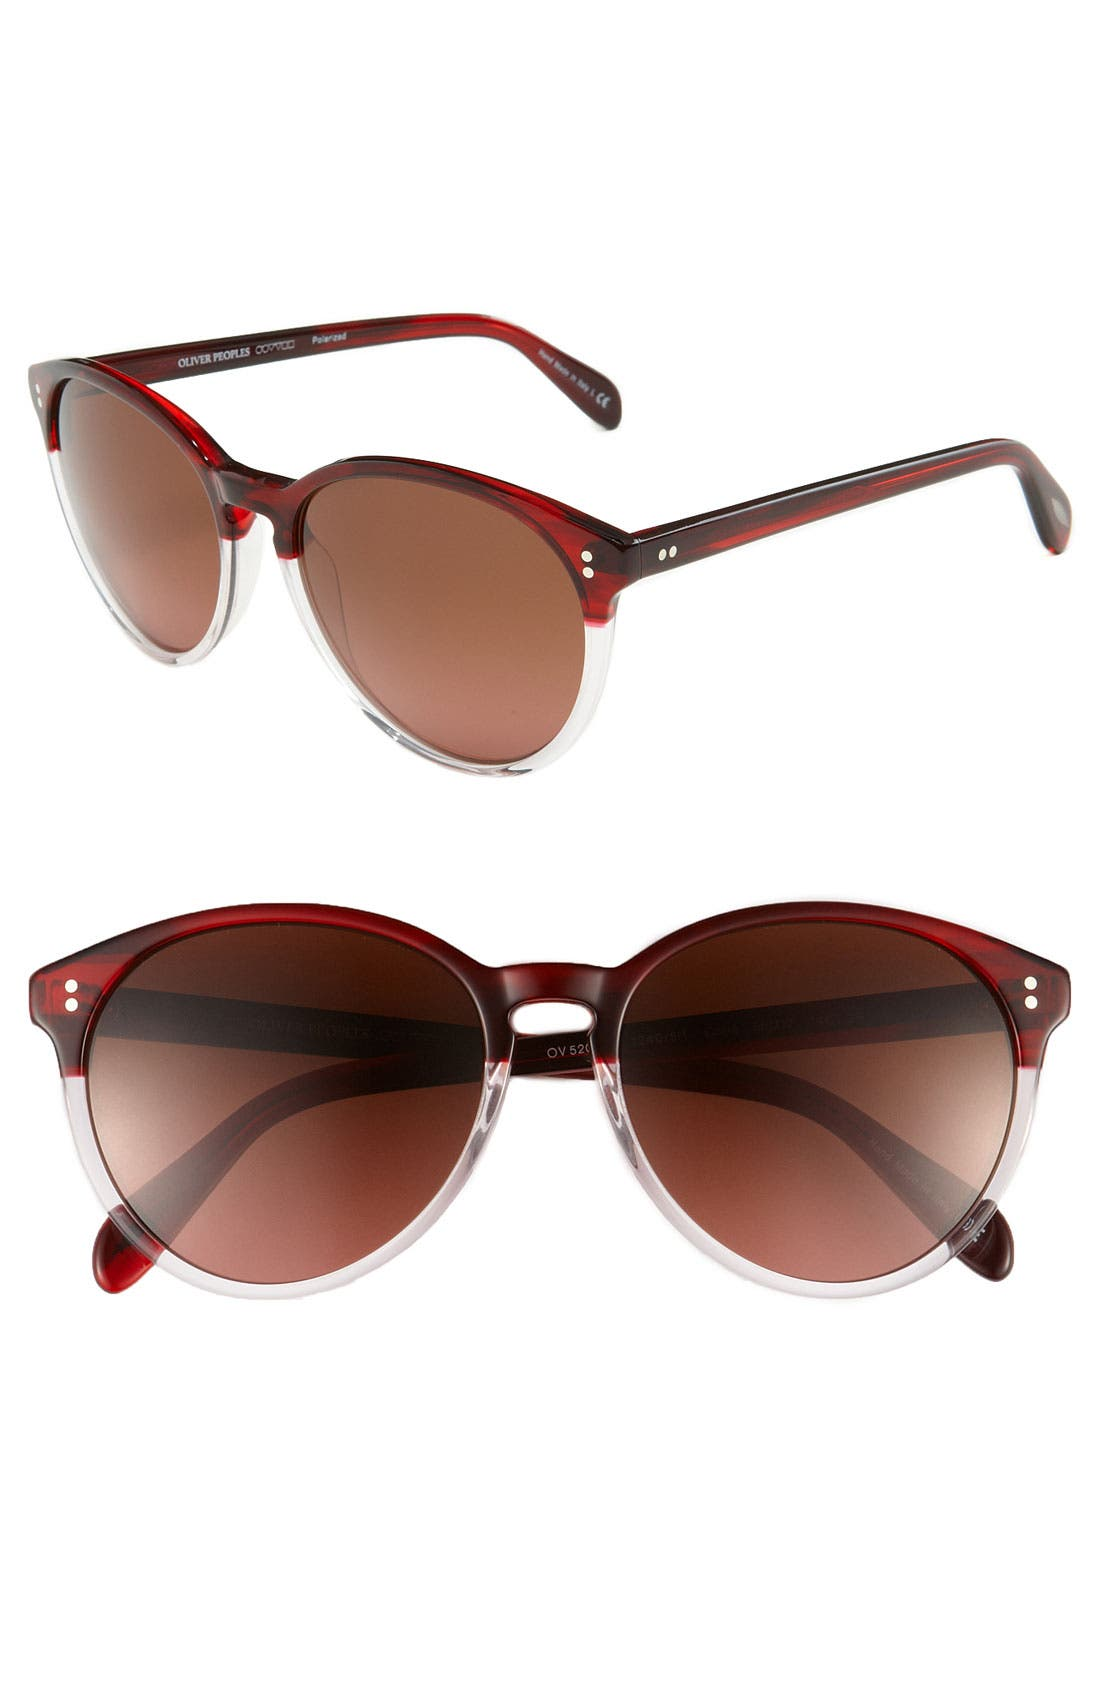 Alternate Image 1 Selected - Oliver Peoples 56mm Sunglasses